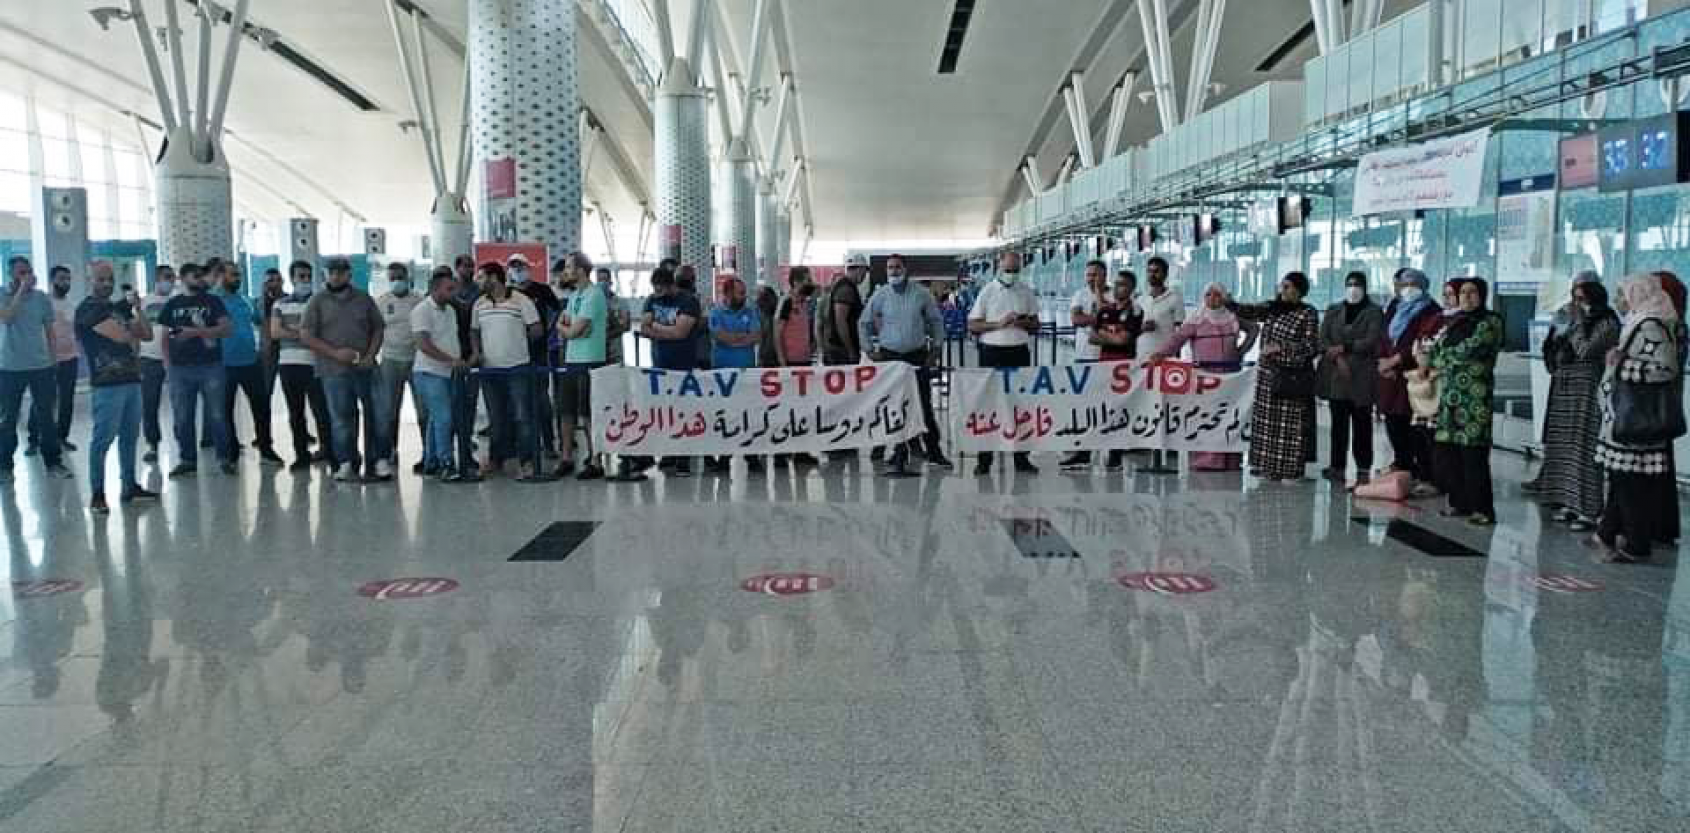 More than 100 airport workers reinstated in Tunisia as unions fight back